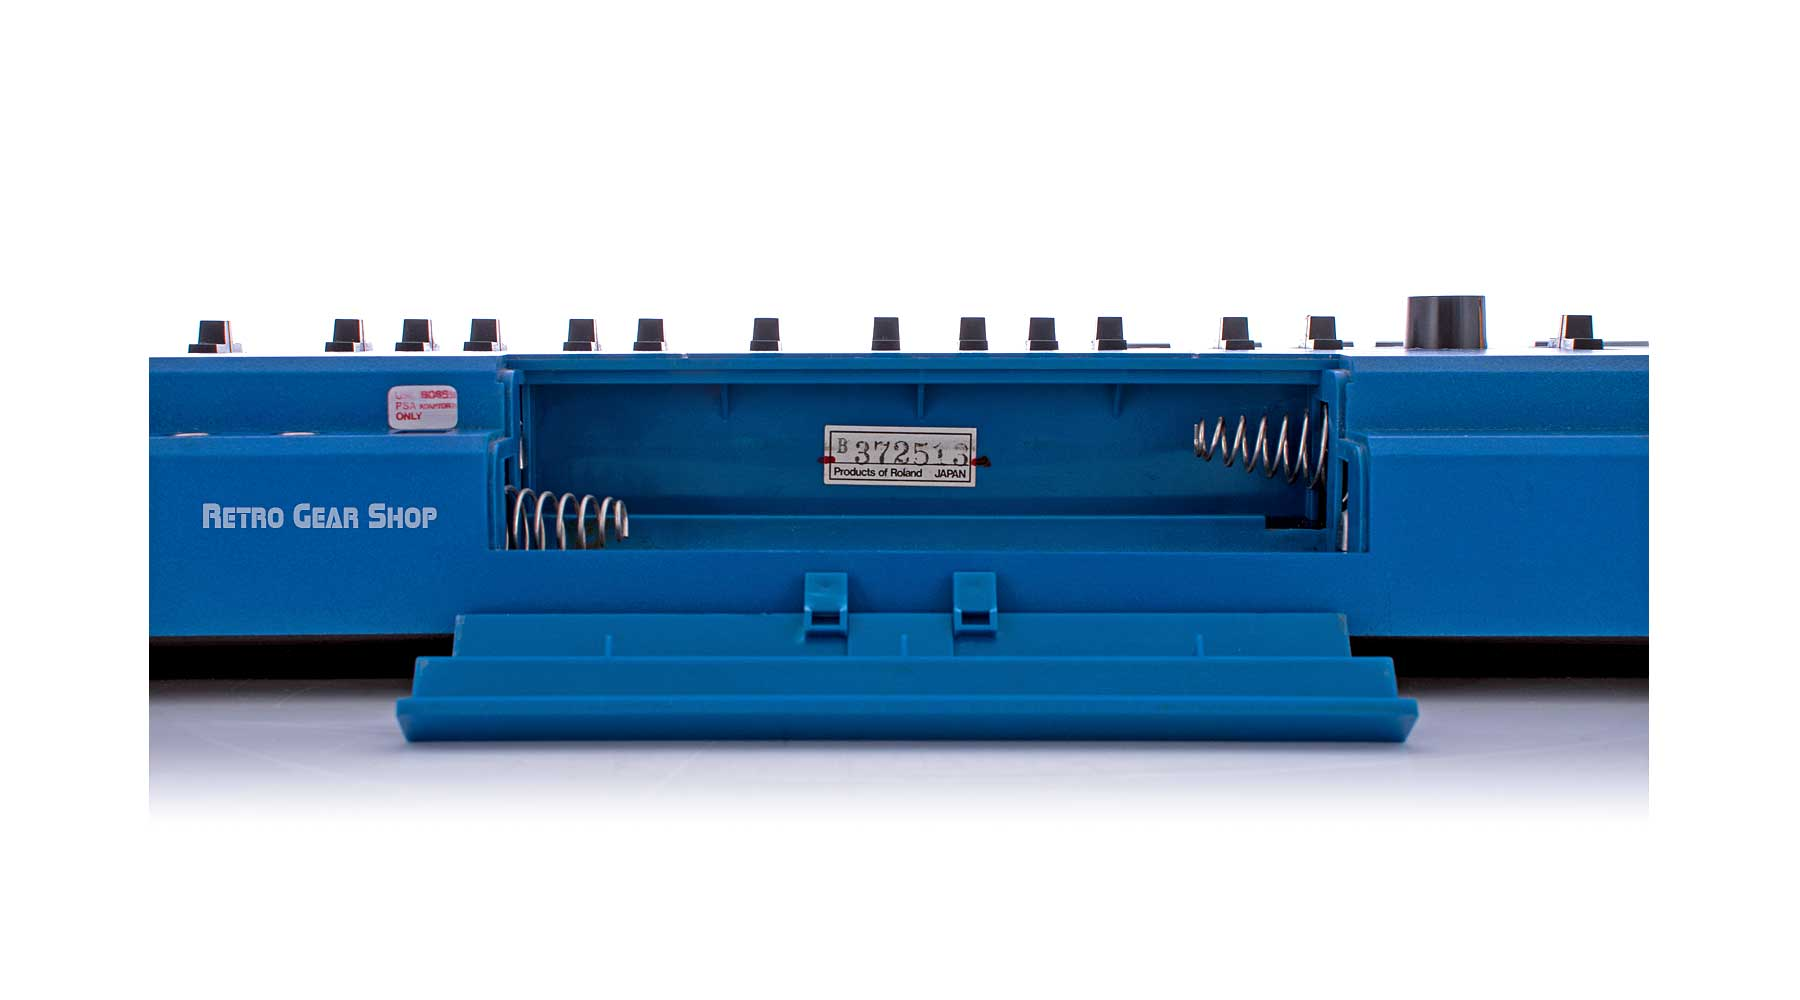 Roland SH-101 Blue Battery Compartment#372513